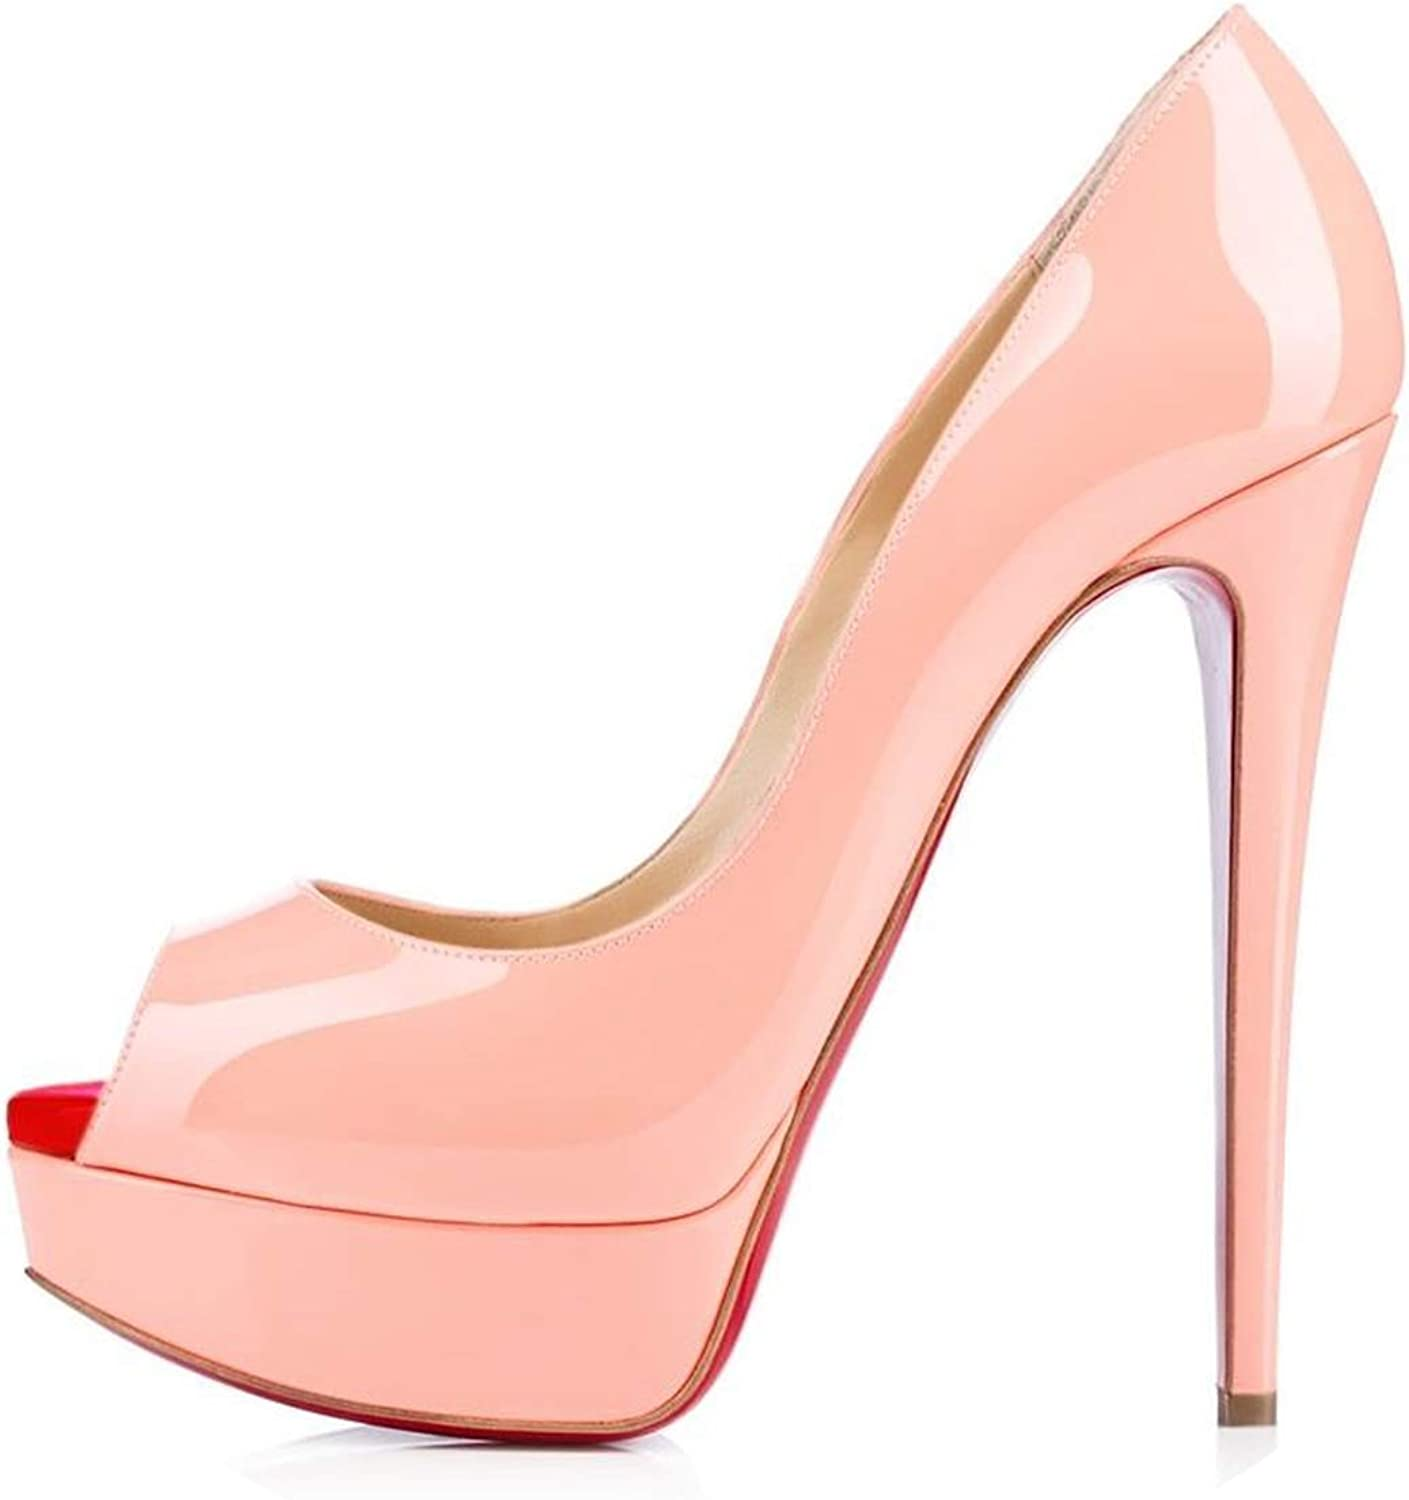 LAIGEDANZI Womens Pumps Leather Wedges Platform Stiletto High Heels Open Toe Sexy Party shoes,Pink,4